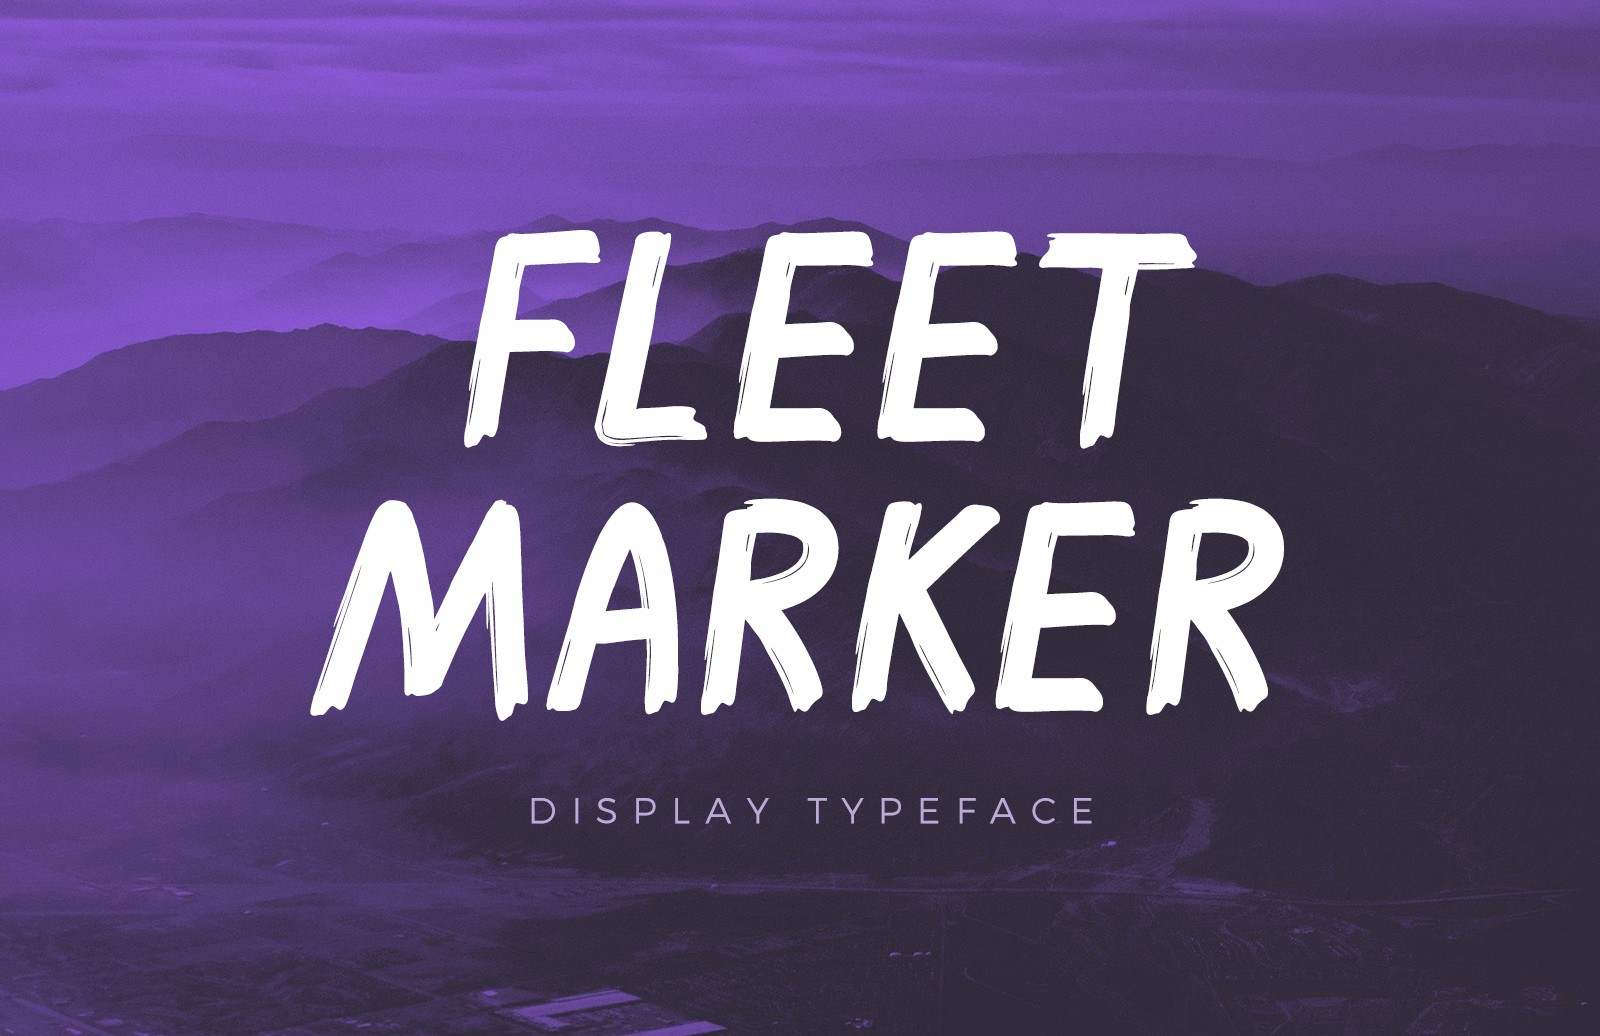 Fleet Marker Display Typeface Preview 1A